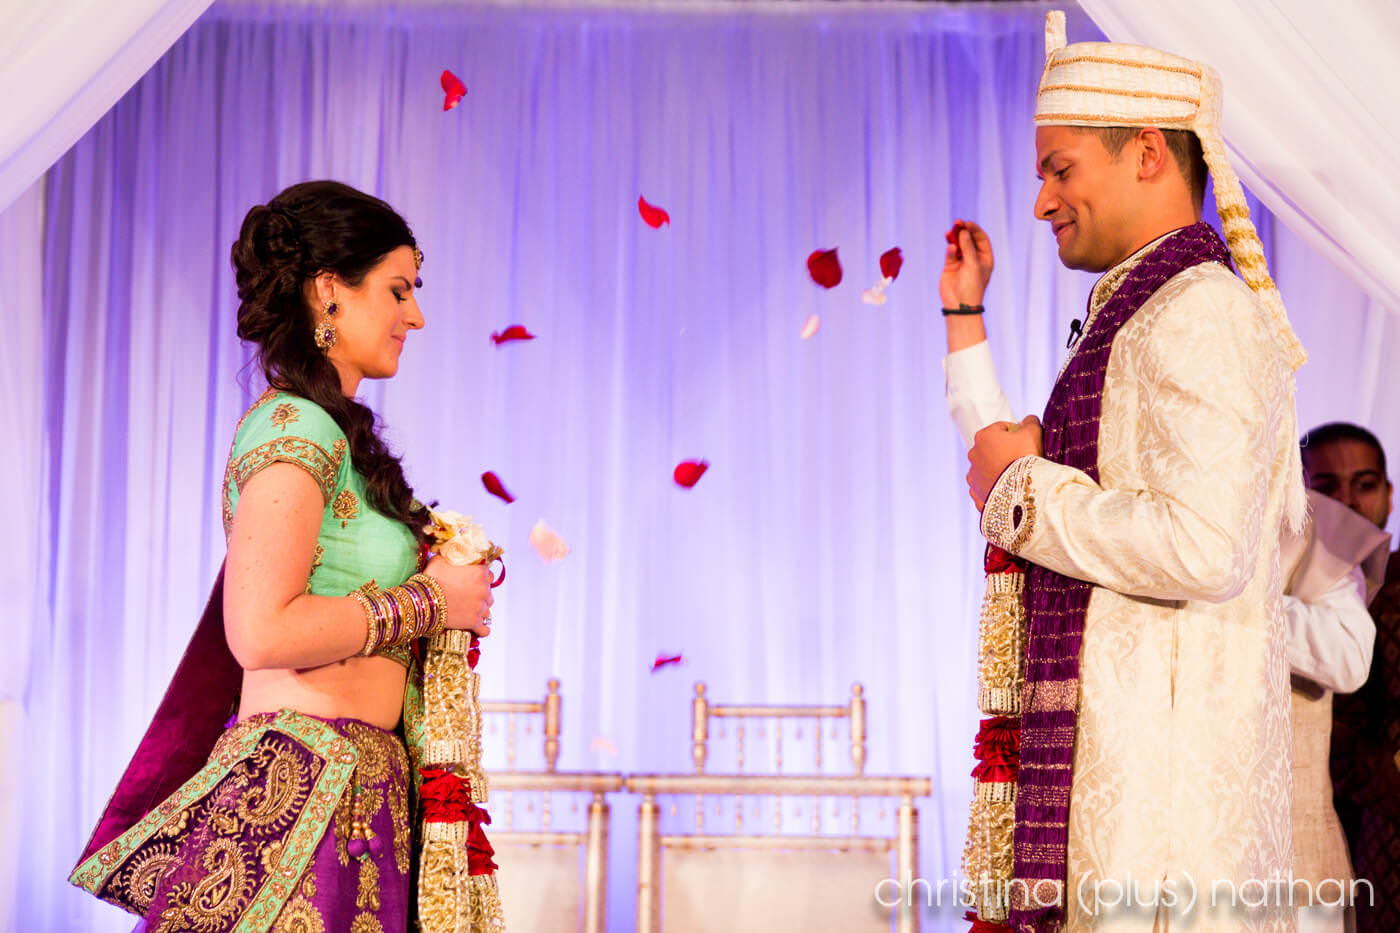 Calgary Wedding Photographers - Hindu wedding